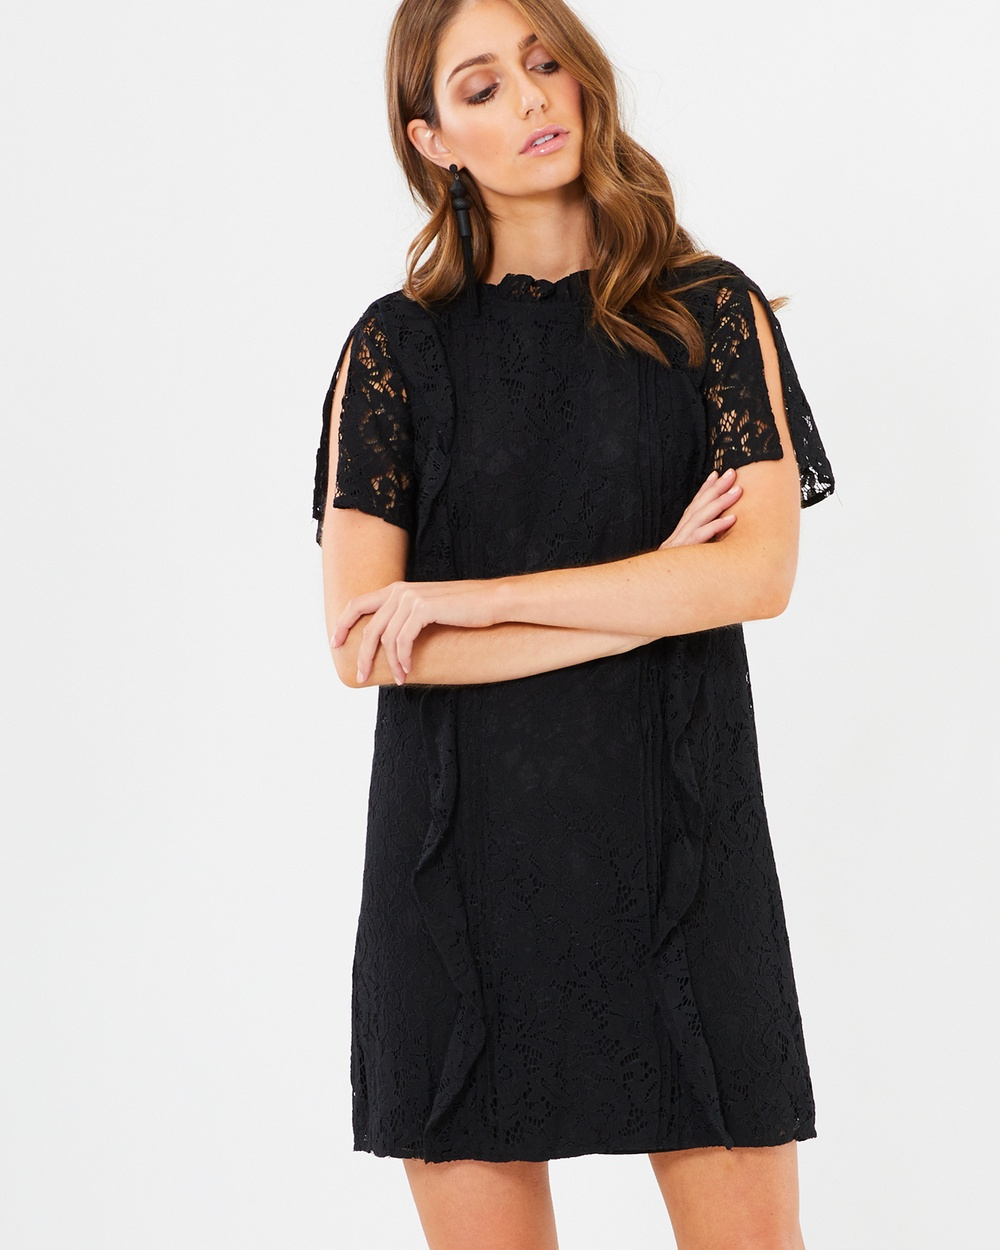 CHANCERY Black Lace Felicia Frill Dress